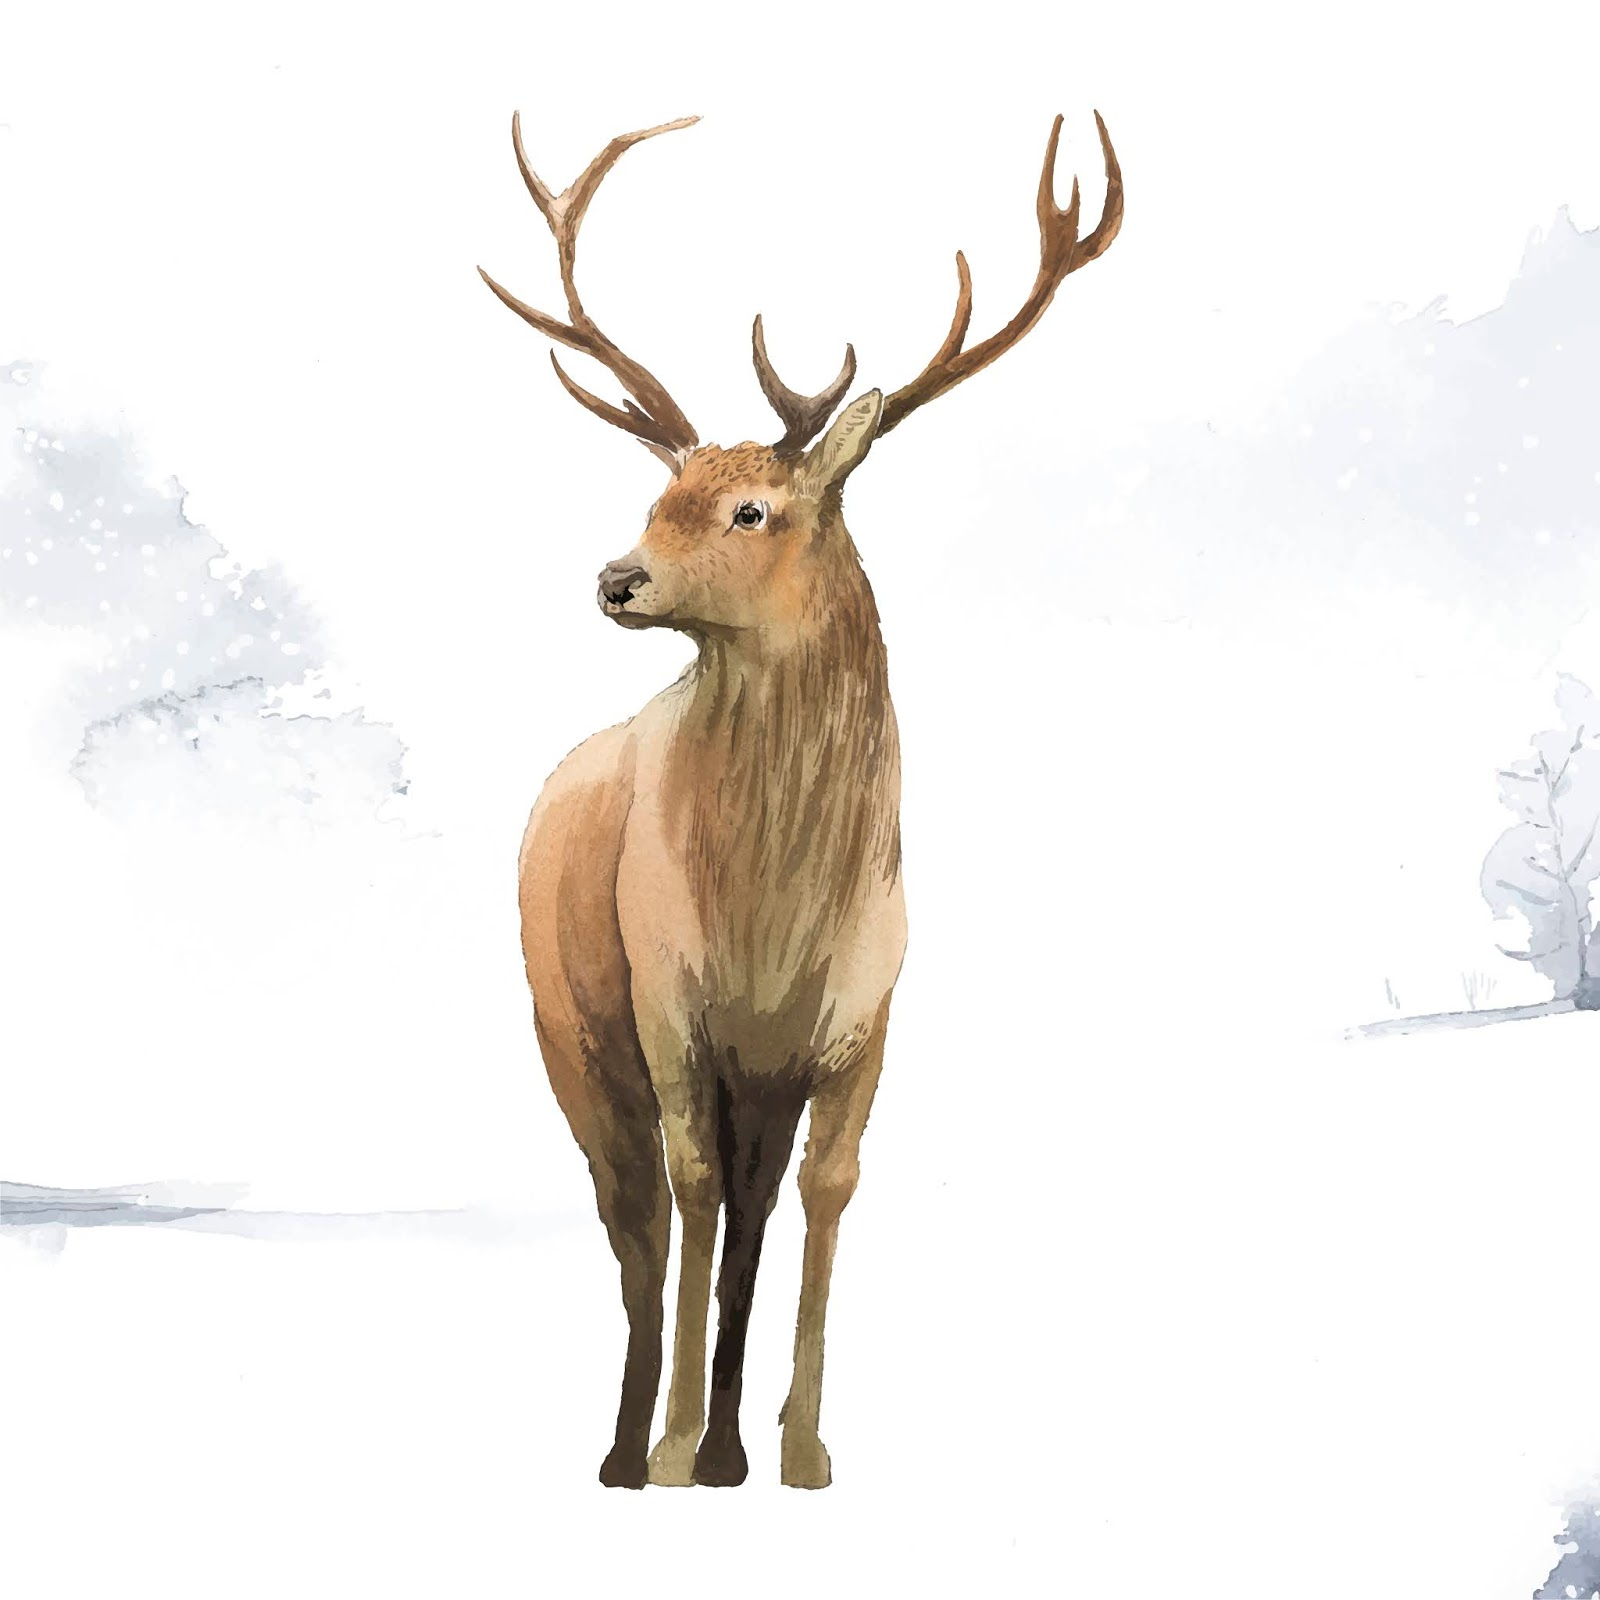 Male Deer Painted By Watercolor Vector Free Download Vector CDR, AI, EPS and PNG Formats